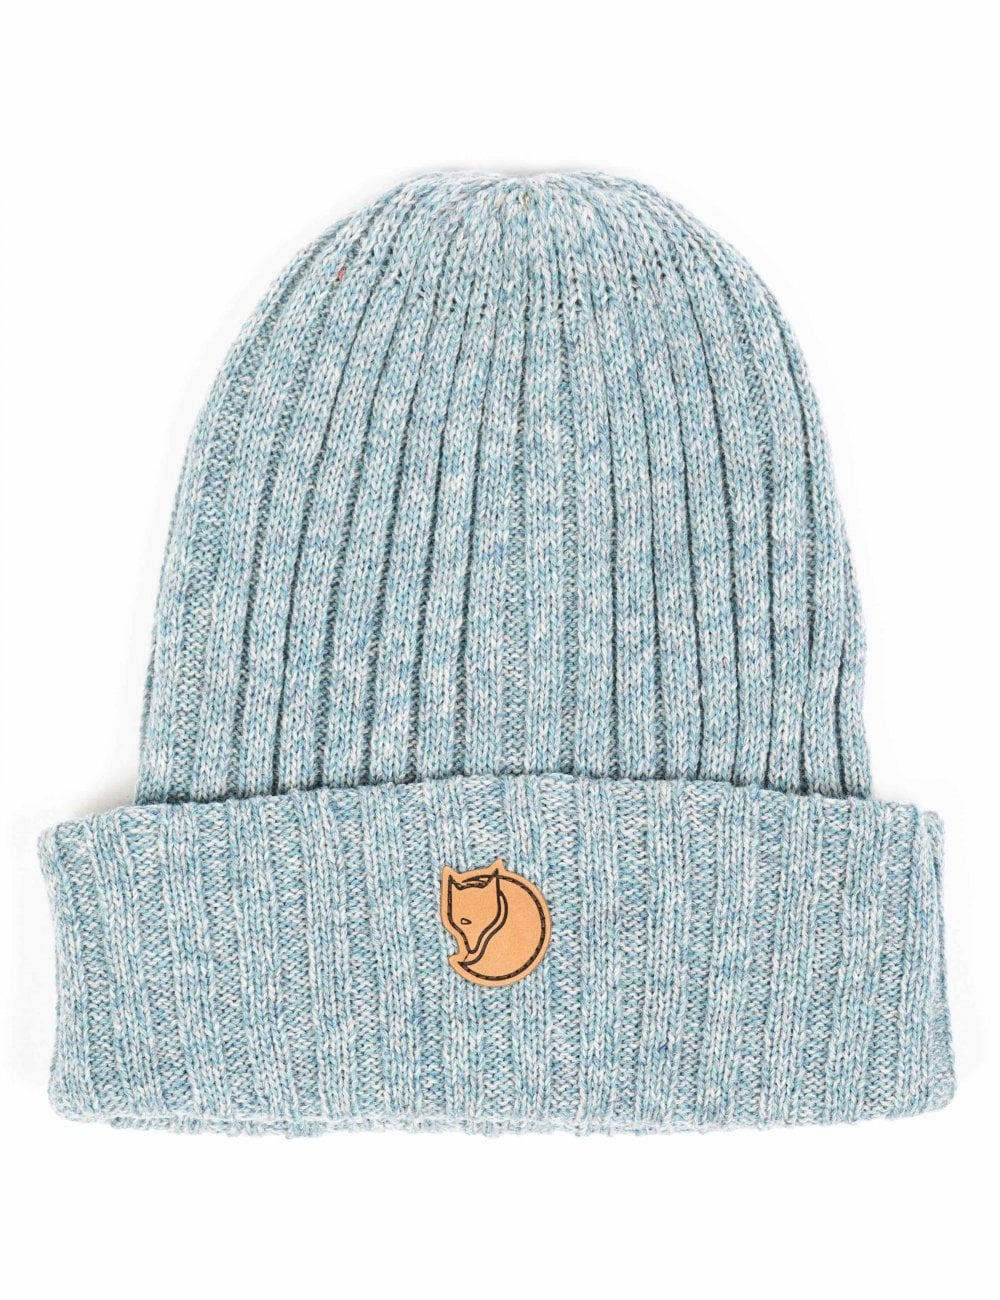 84650362492 Fjallraven Byron Beanie Hat - Frost Green Light Grey - Accessories ...